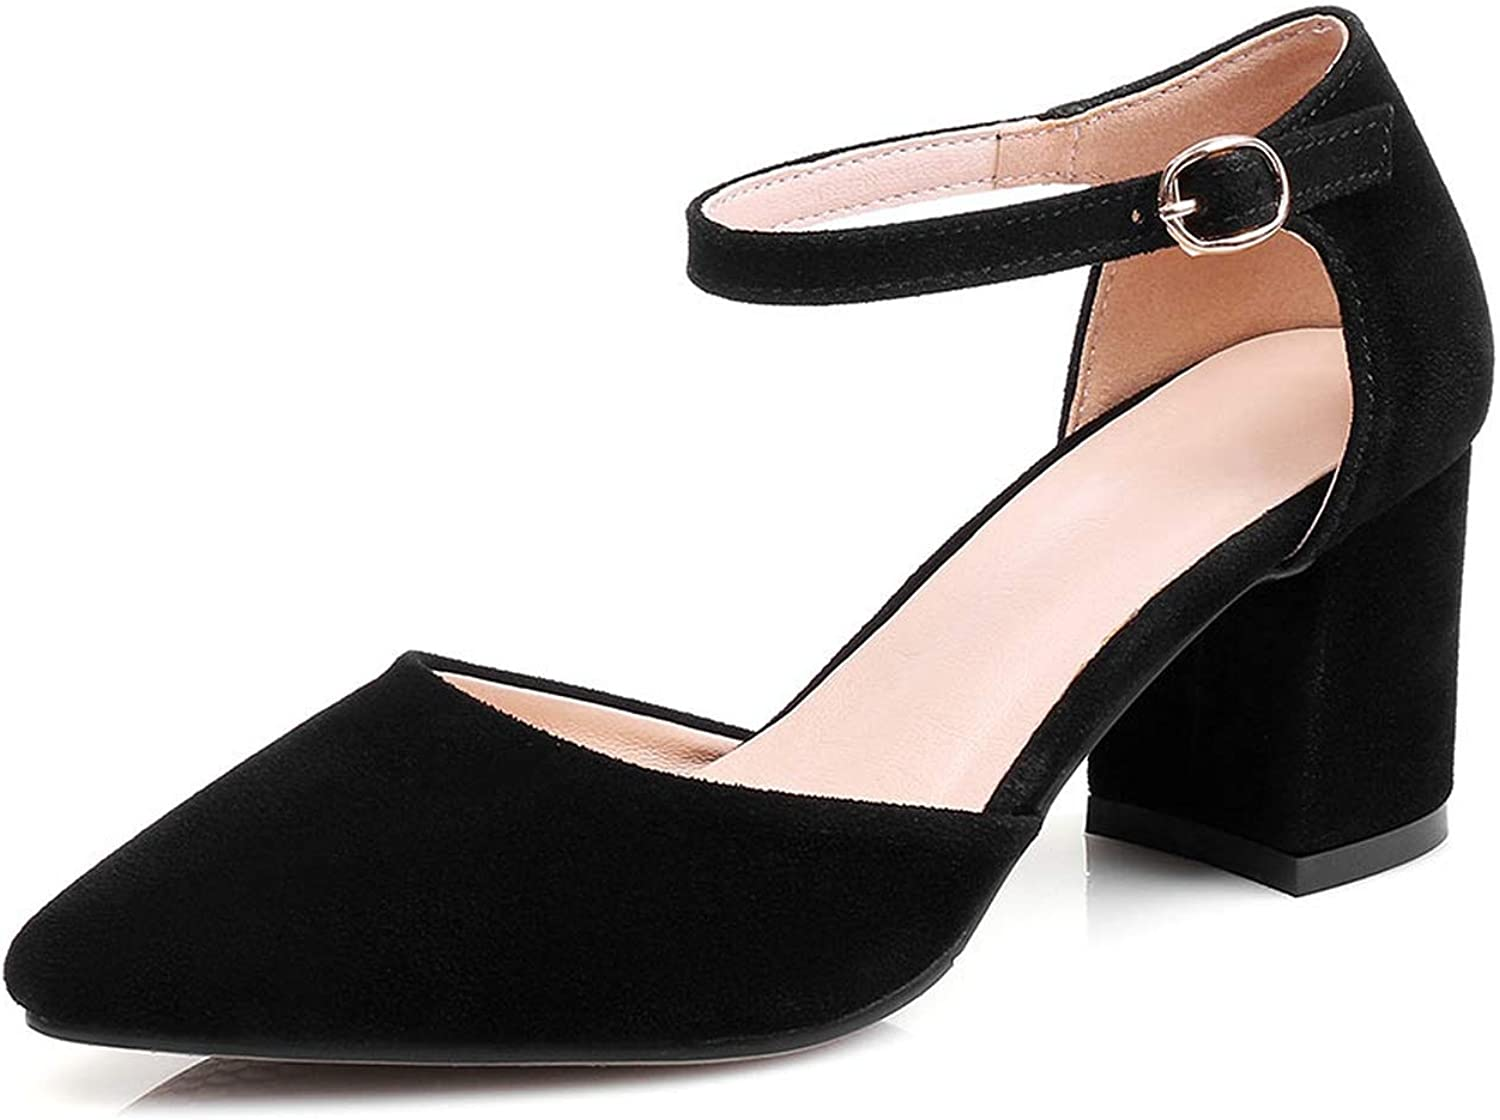 QianQianStore Summer Casual Block Heels Pumps Flock Square Med Heels shoes Pointed Toe Buckle Strap Sandals shoes